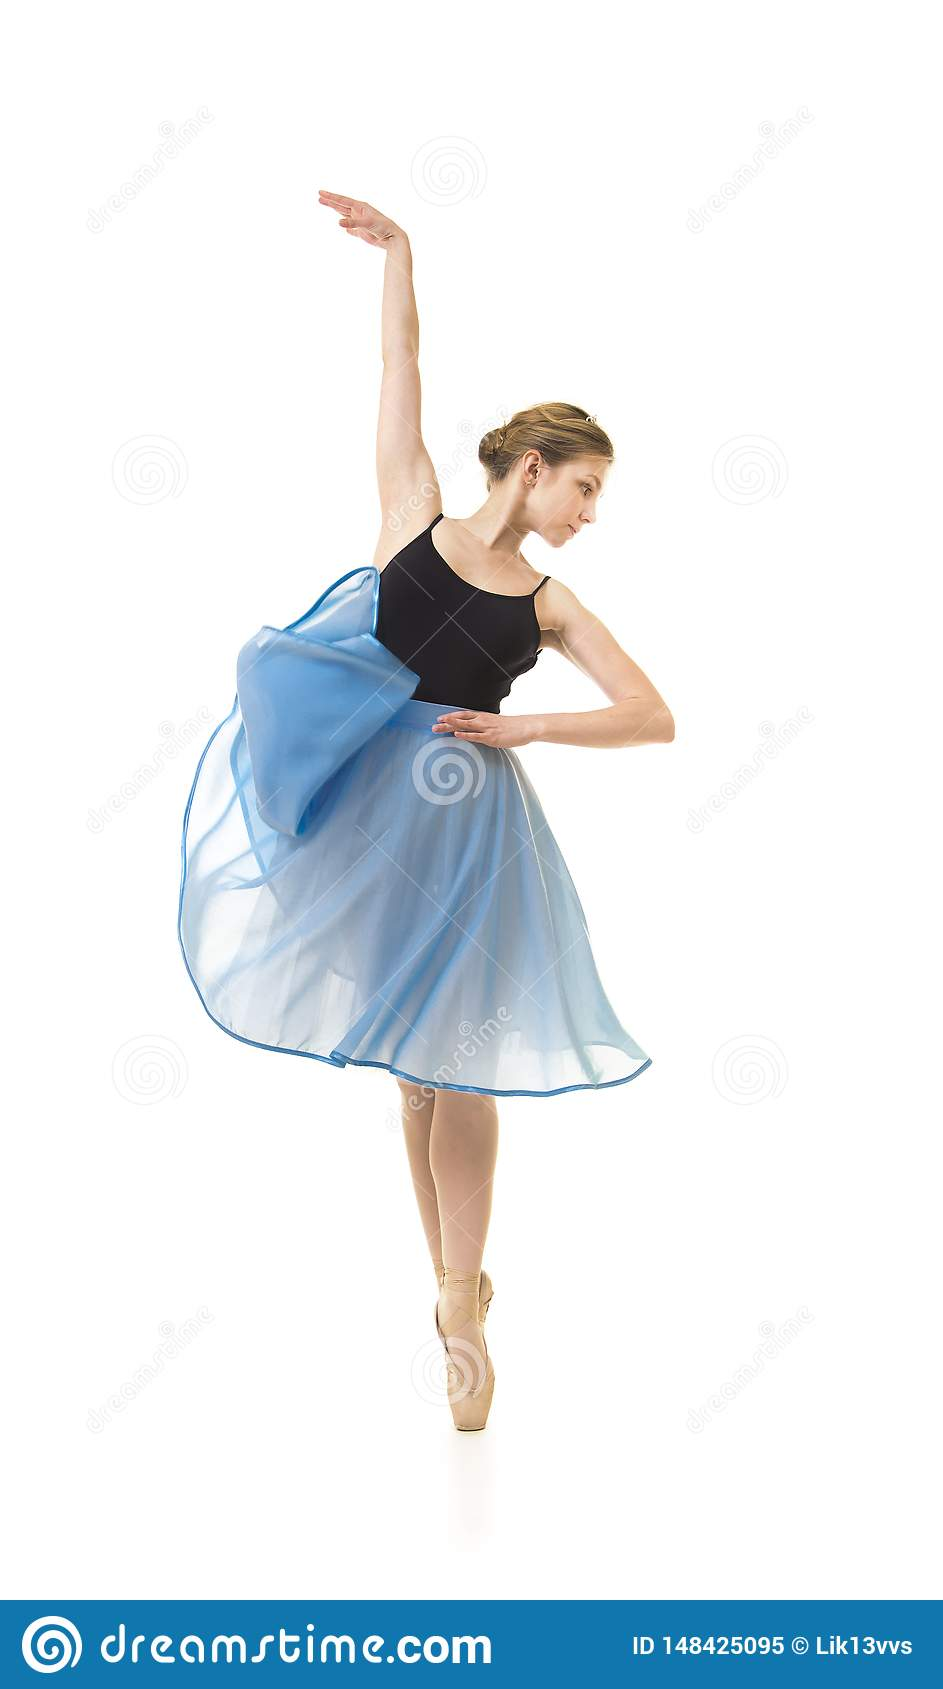 Girl in a blue skirt and a black leotard dance ballet